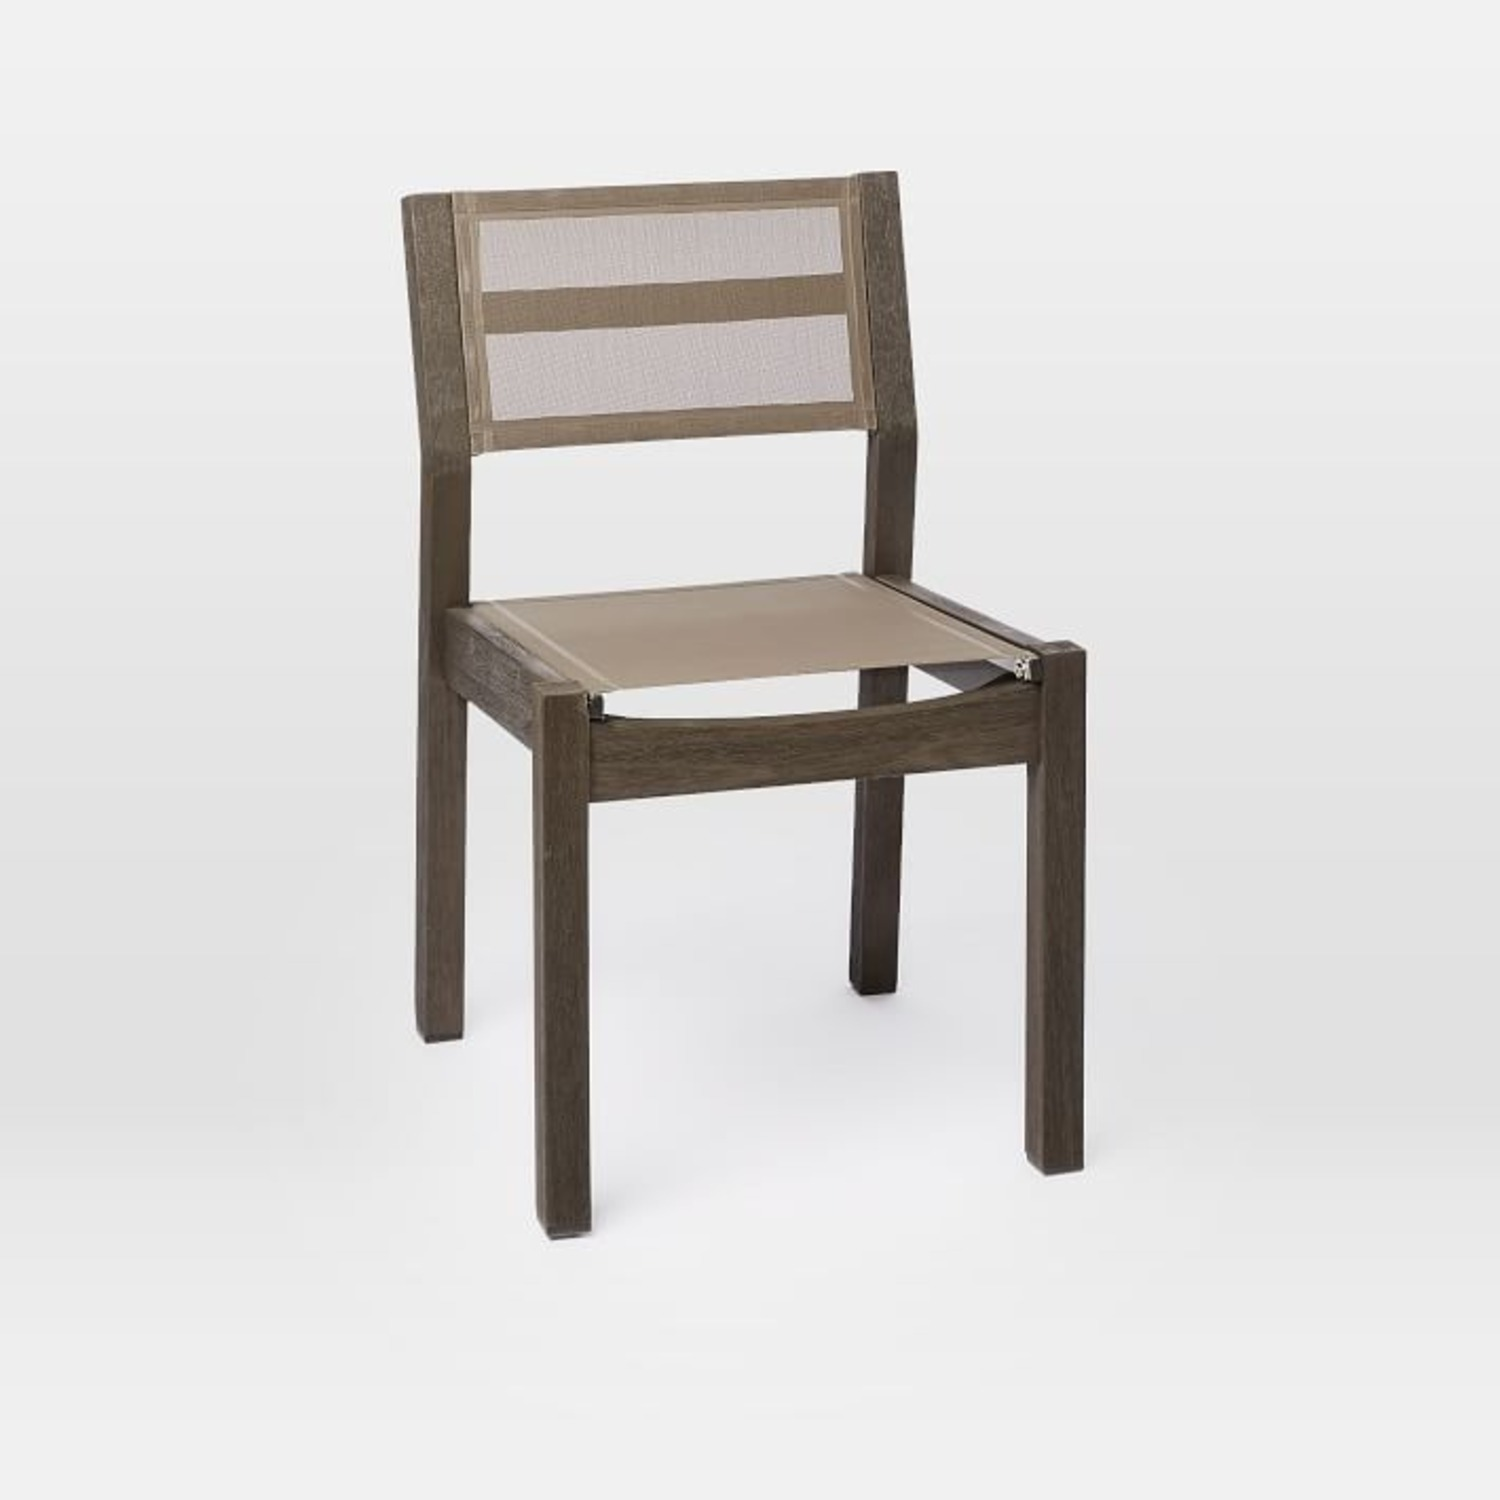 West Elm Portside Textiline Chair, Weathered Cafe - image-2